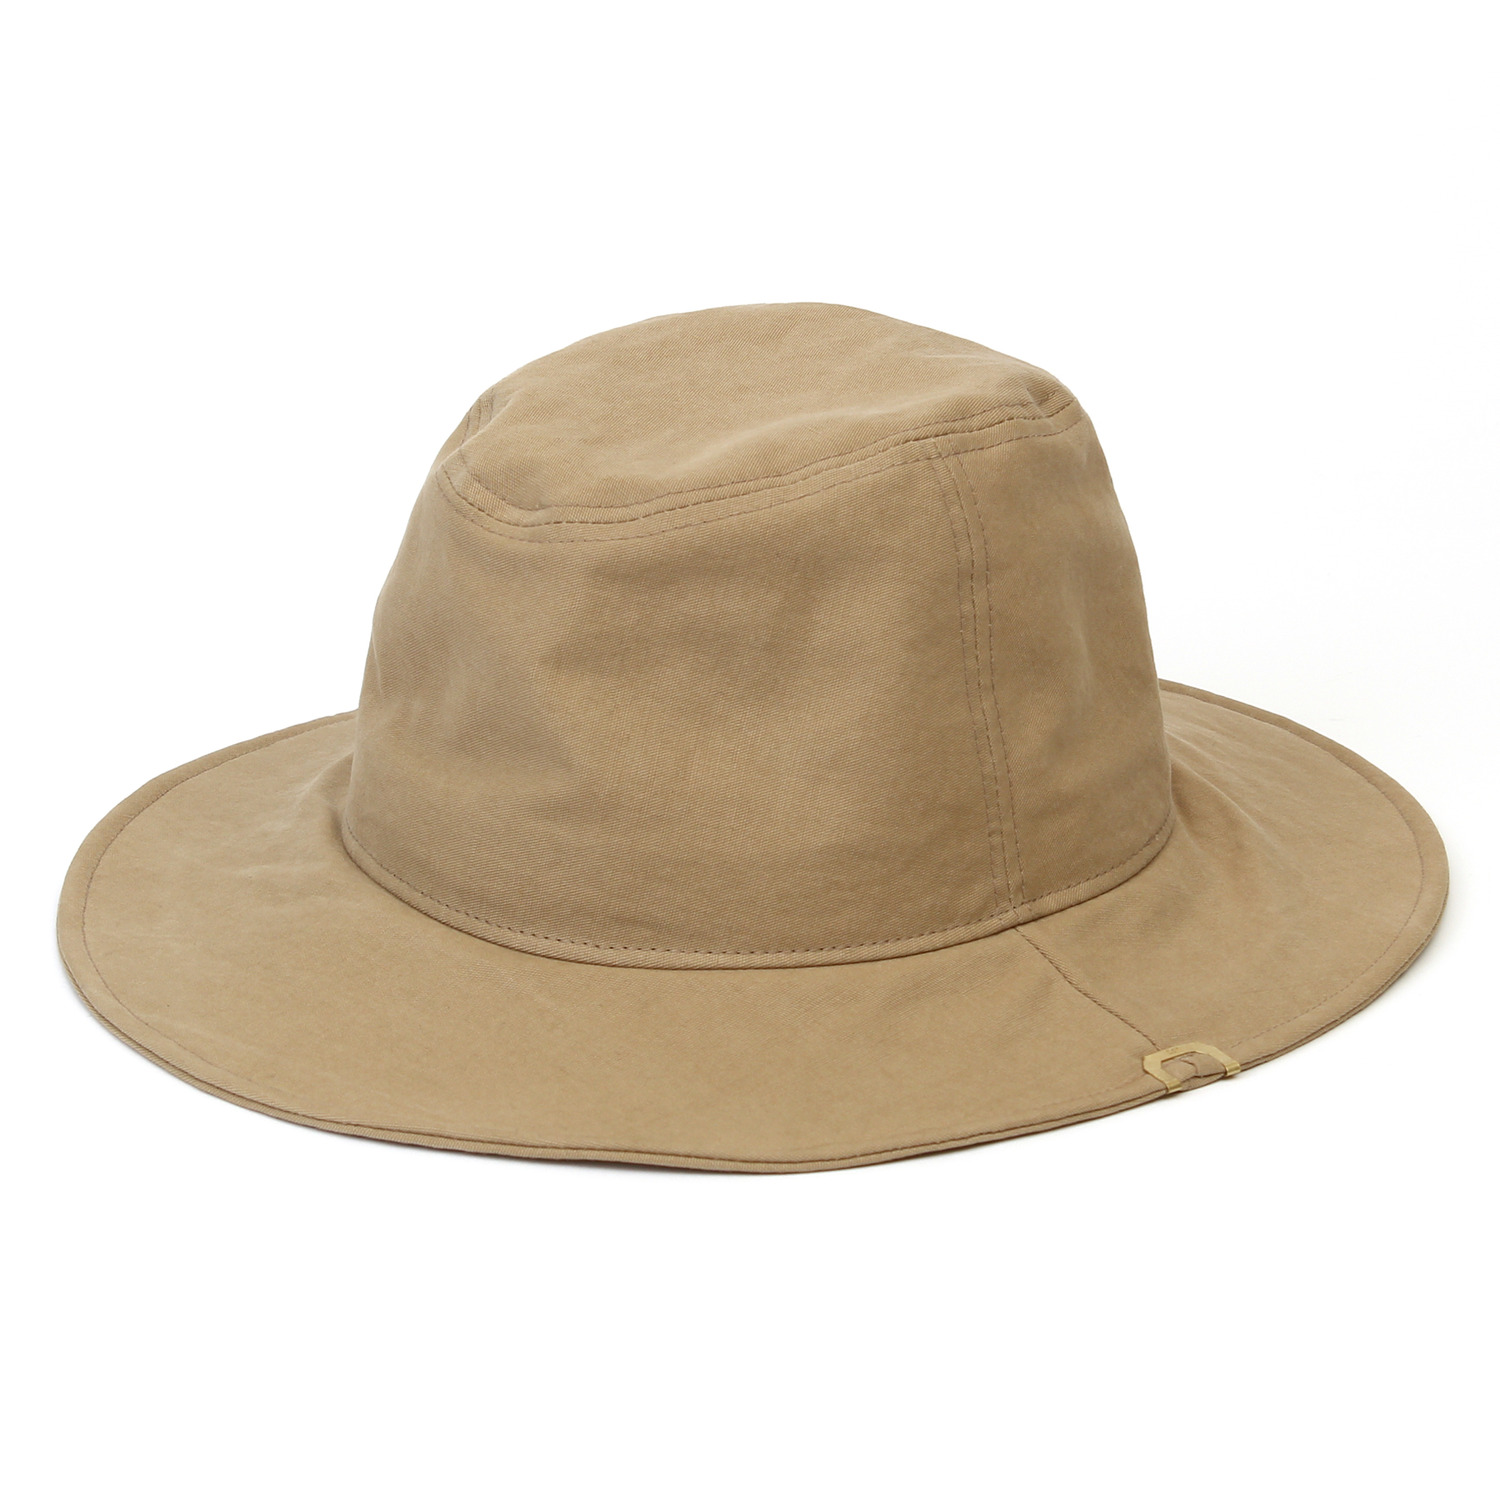 HIGH RISE HAT / BIO / DESERT